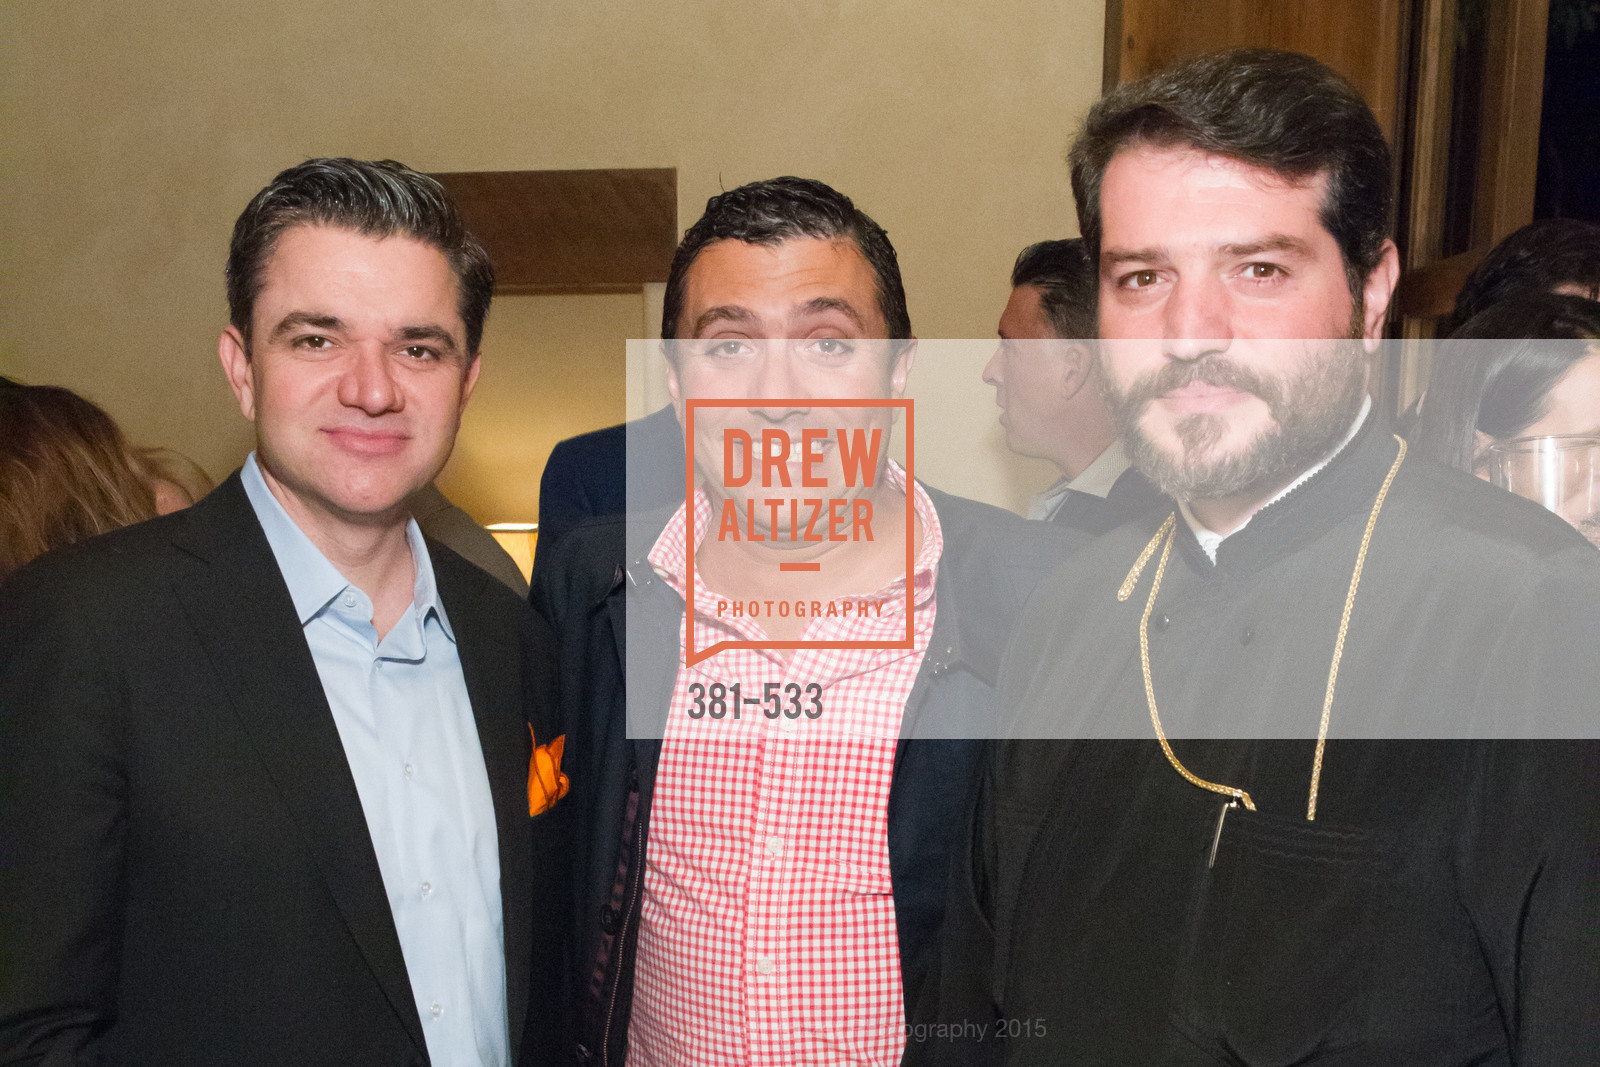 John Costouros, George Gavros, Apostolos Koufalakis, Hellenic Charity Ball Cocktail Reception, Kokkari. 200 Jackson St, San Francisco, CA 94111, November 13th, 2015,Drew Altizer, Drew Altizer Photography, full-service agency, private events, San Francisco photographer, photographer california